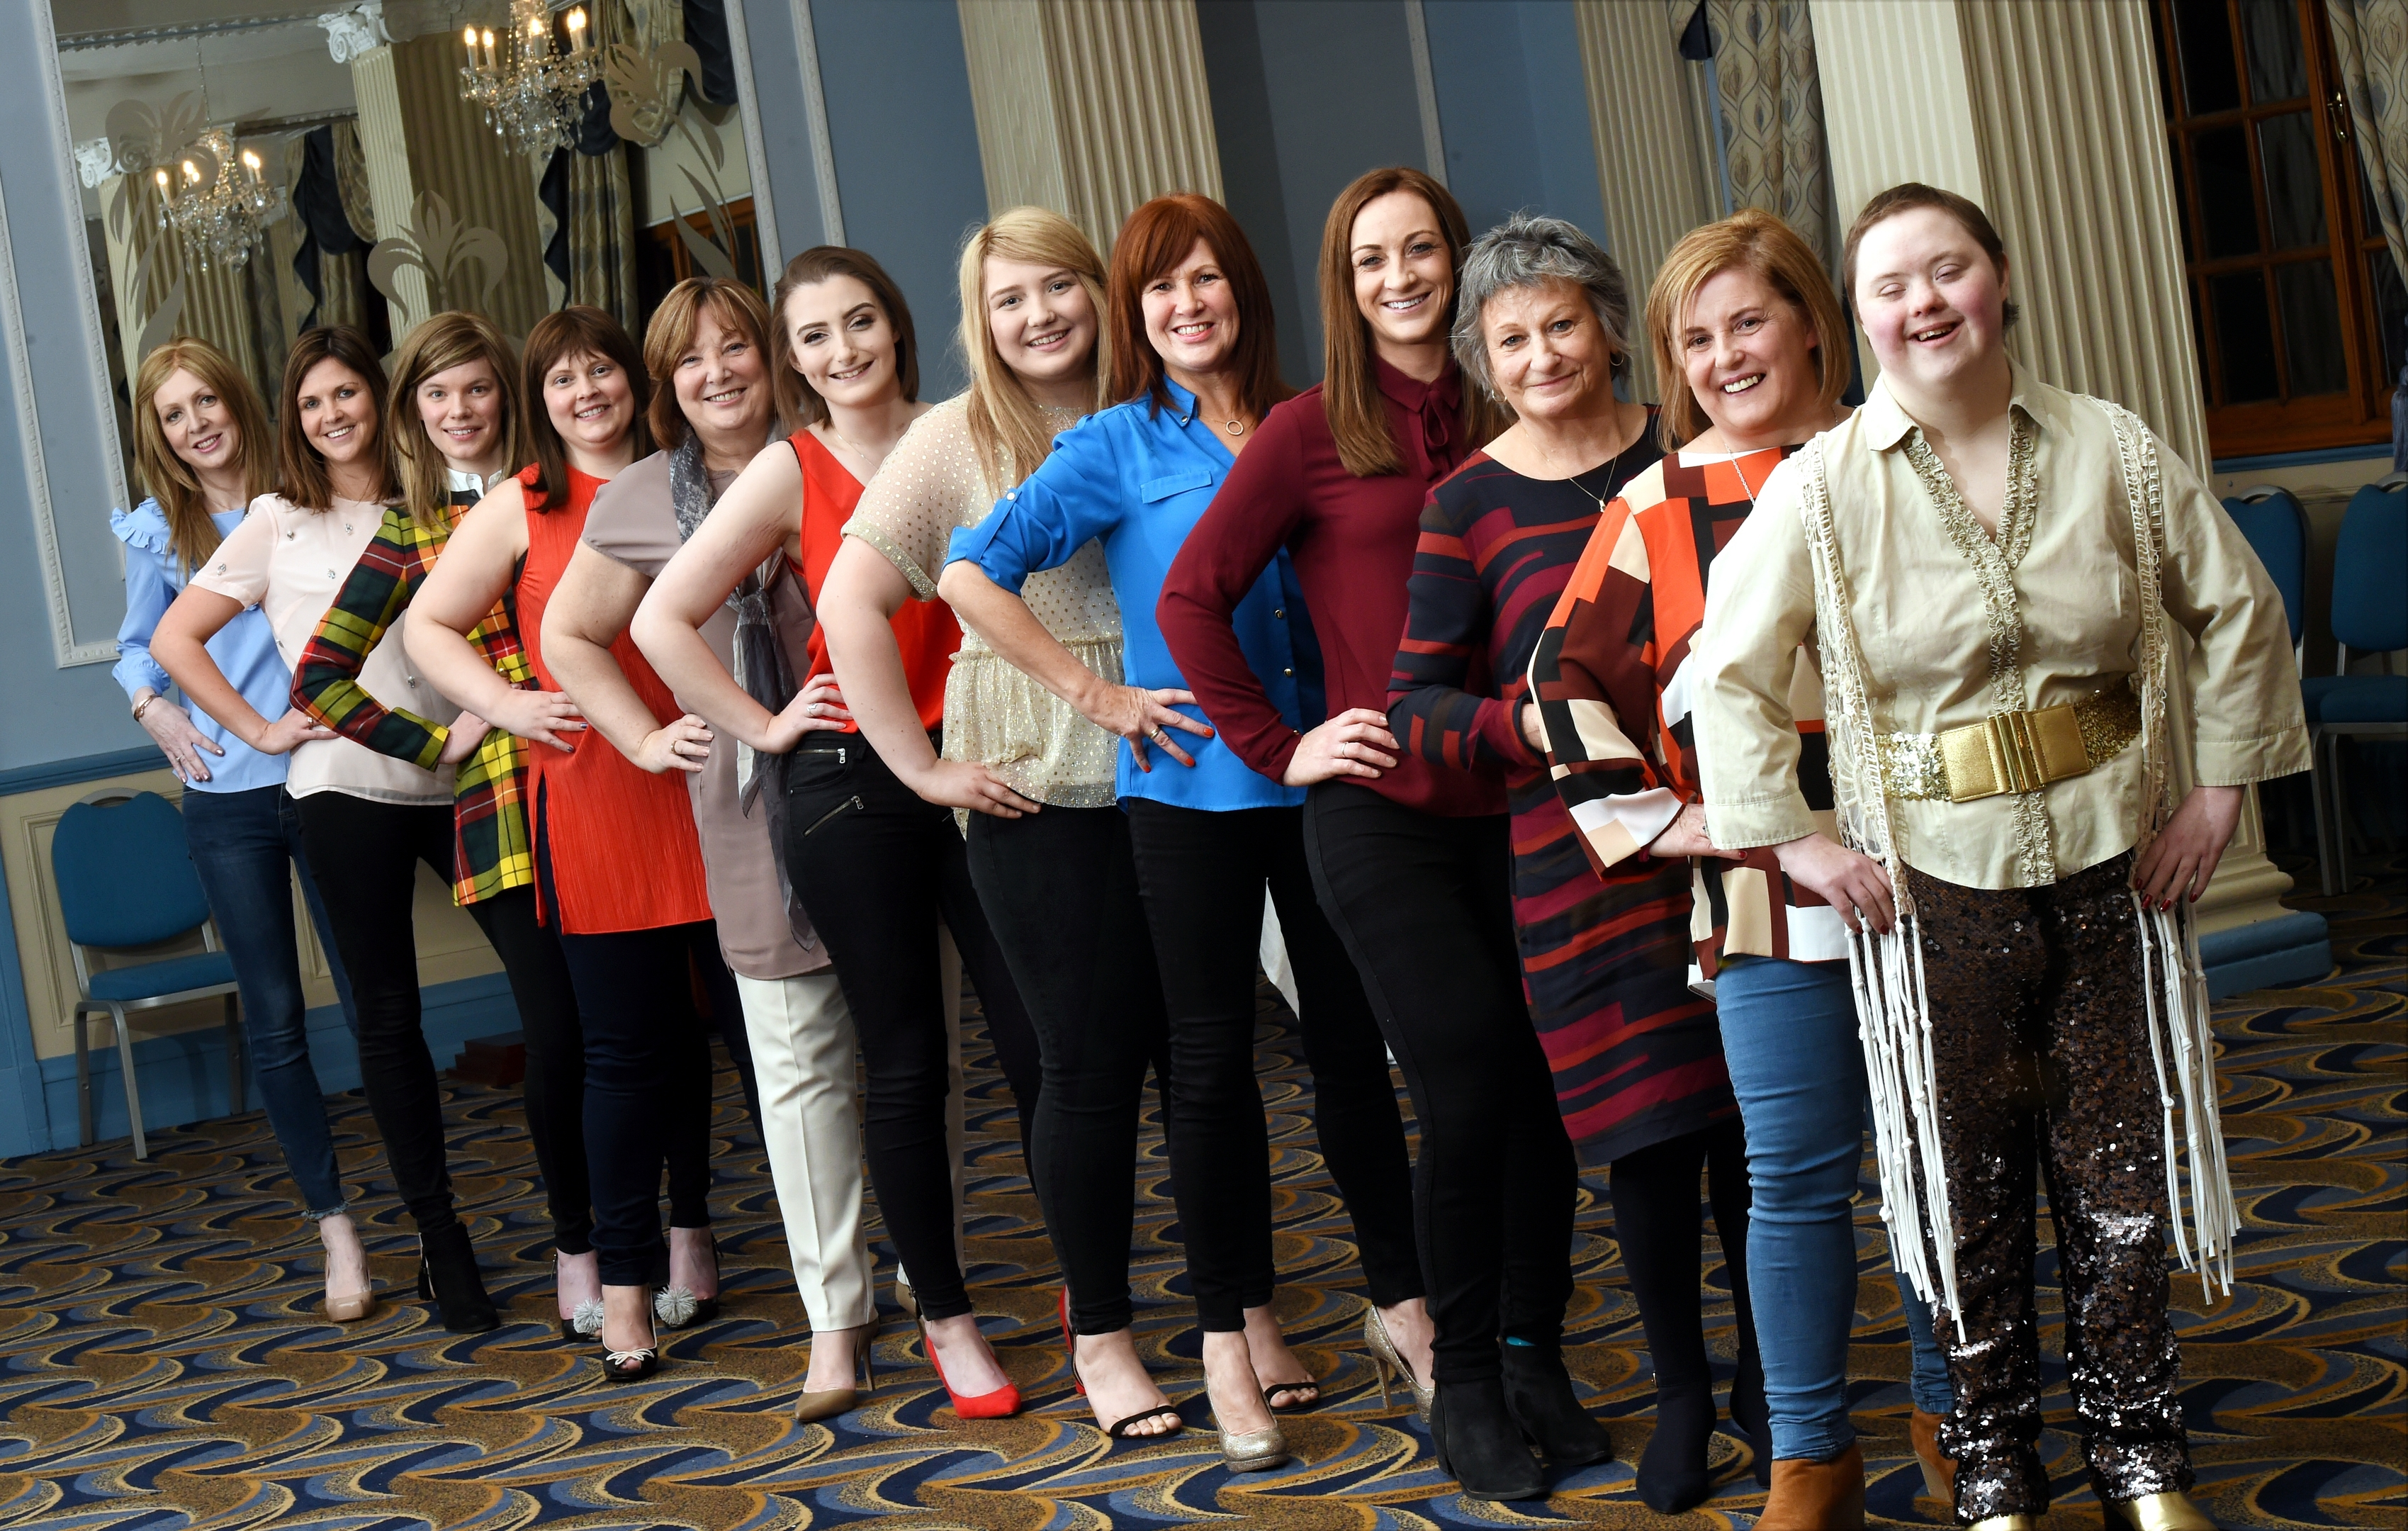 Rowena Mingo at the front with the rest of the Courage models.